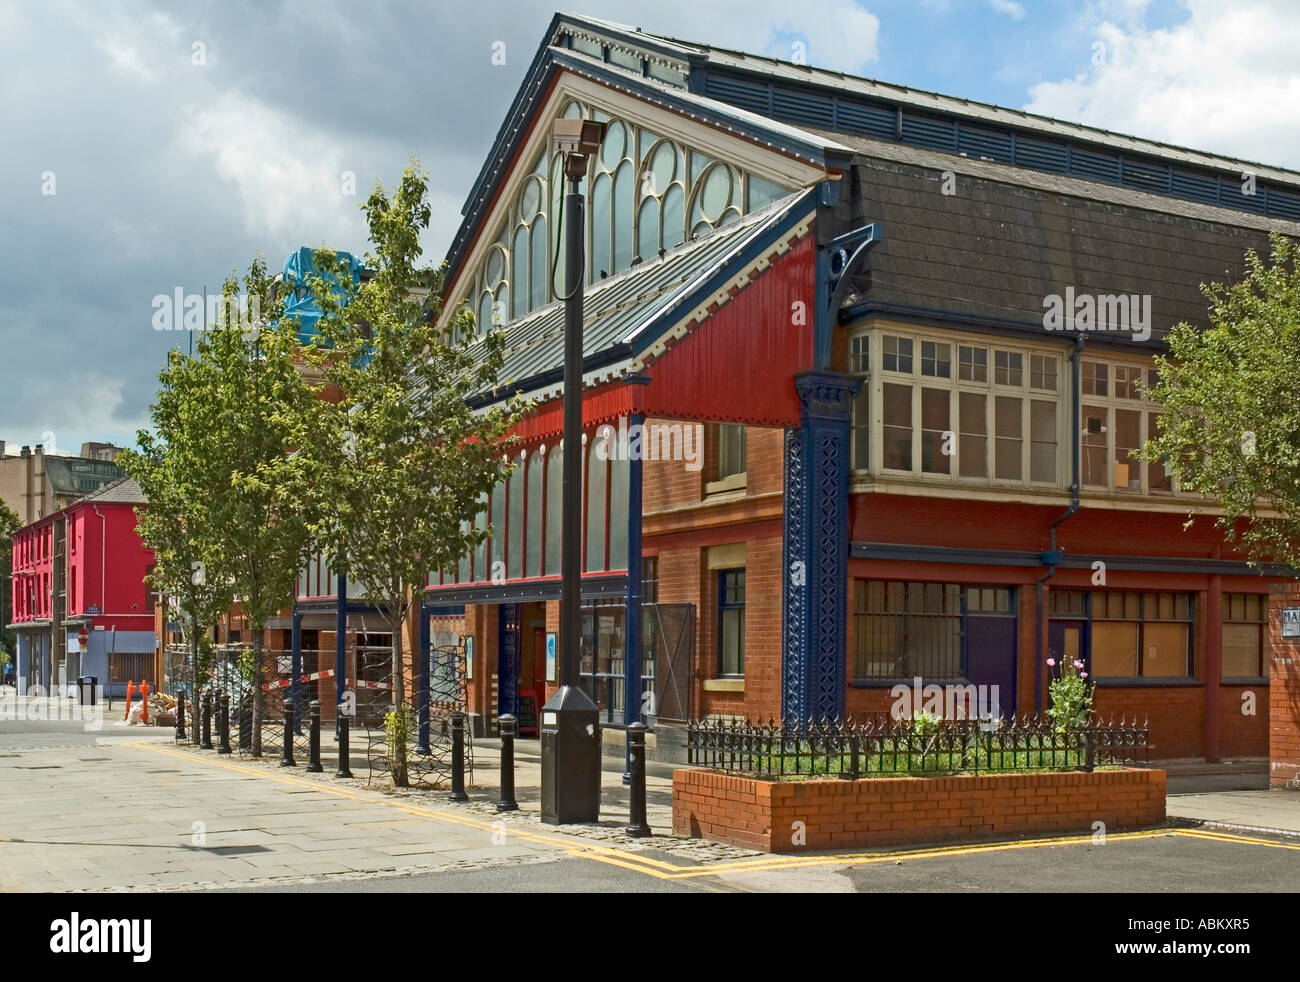 Manchester Craft and Design Centre, known as Manchester Craft Village, Manchester, England, UK - Stock Image